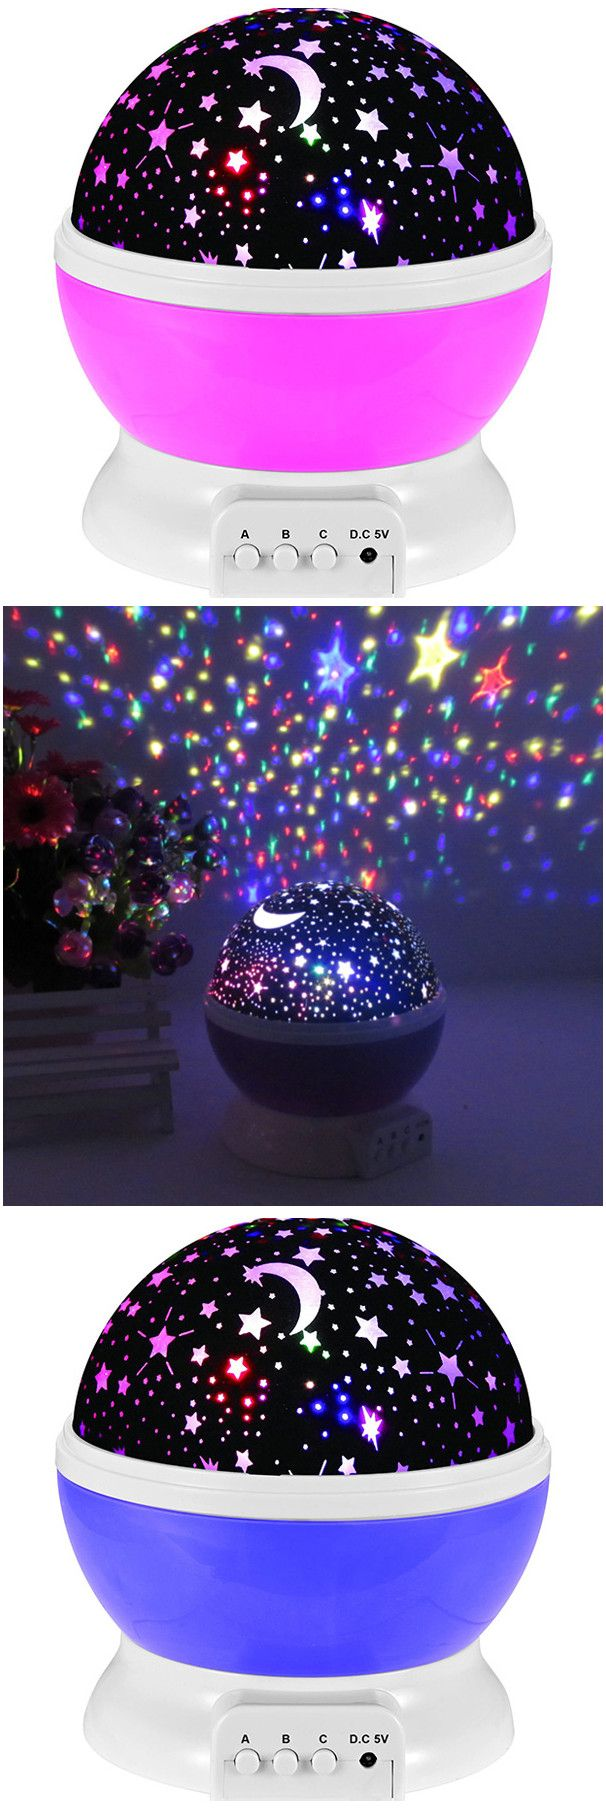 $10.97 Mew Starry Sky Babysbreath Autorotation LED Night Light